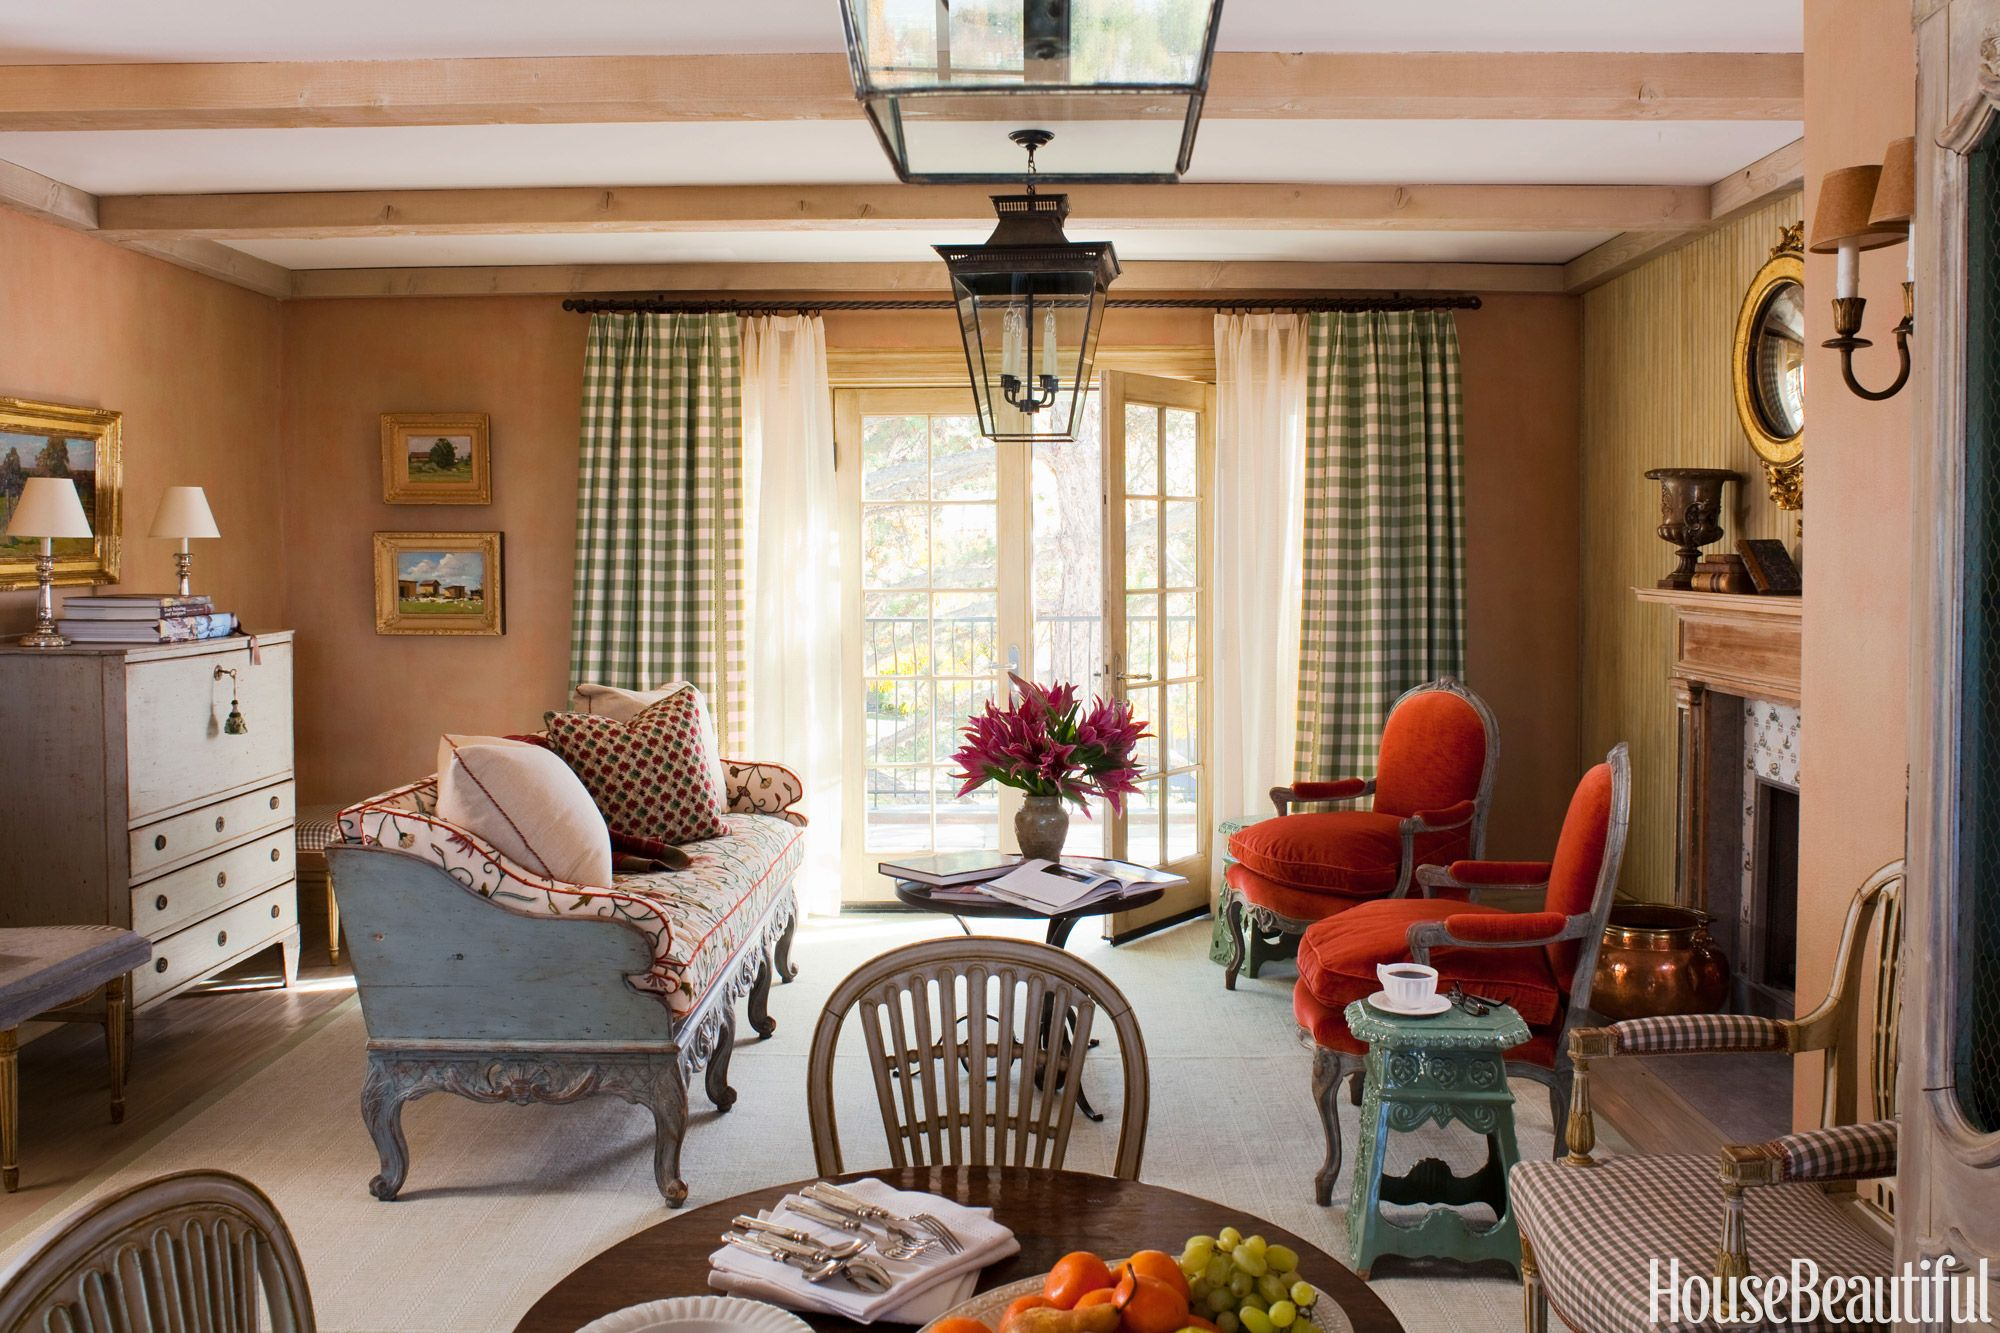 We earn a commission for products purchased through some links in this article. 15 Best Small Living Room Ideas - How to Design a Small ...